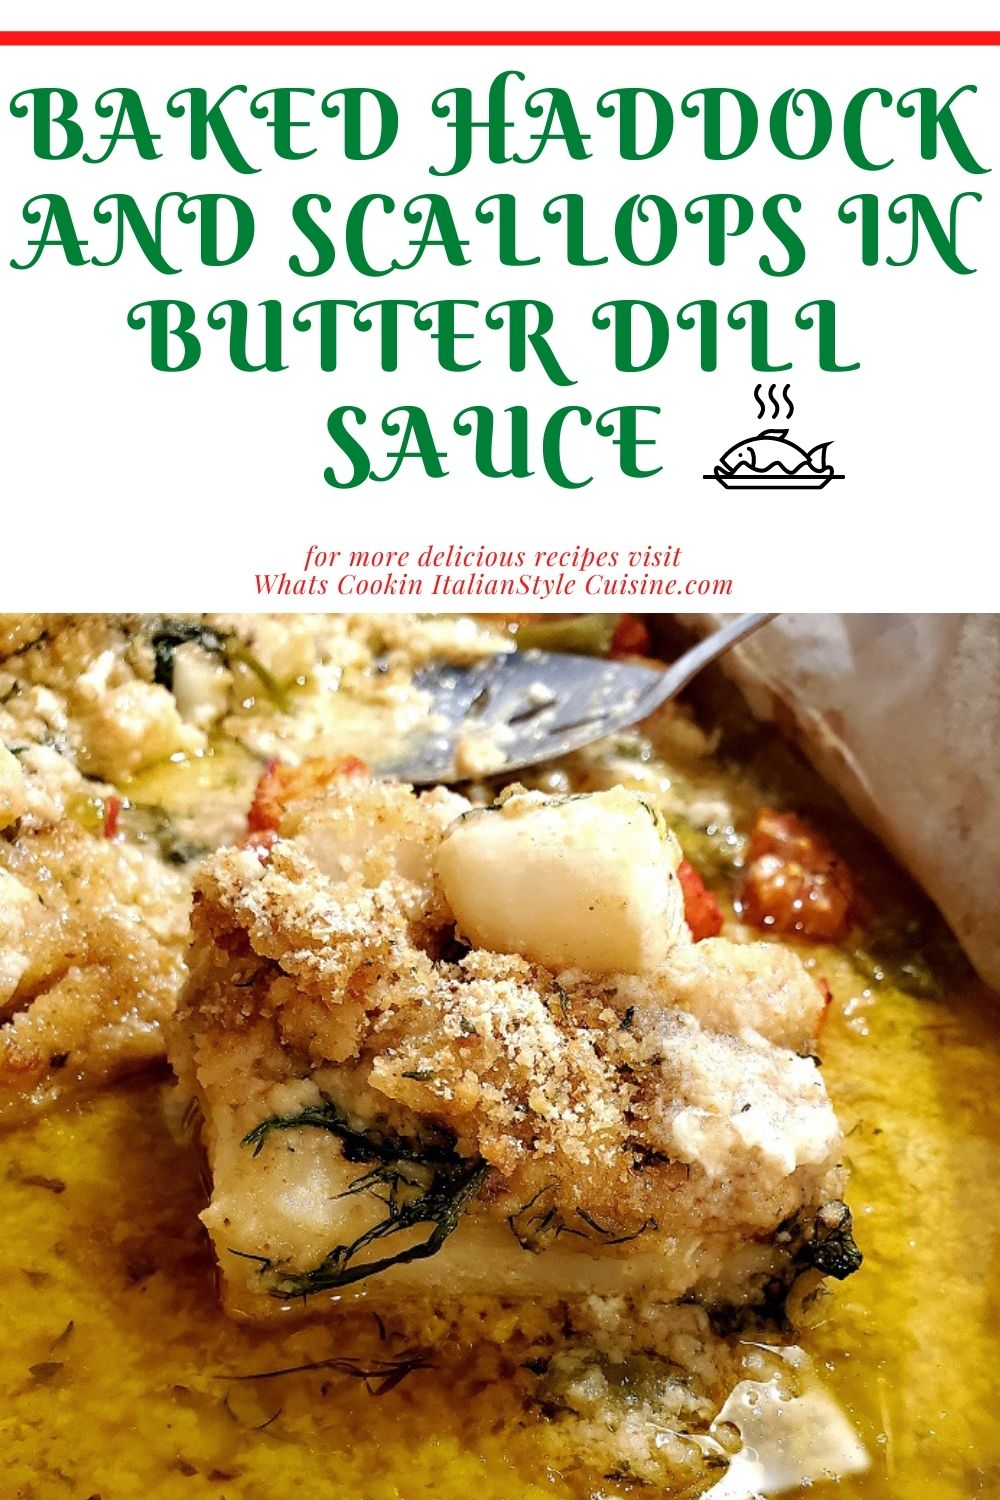 this is a pin for haddock baked in lemon dill butter  sauce